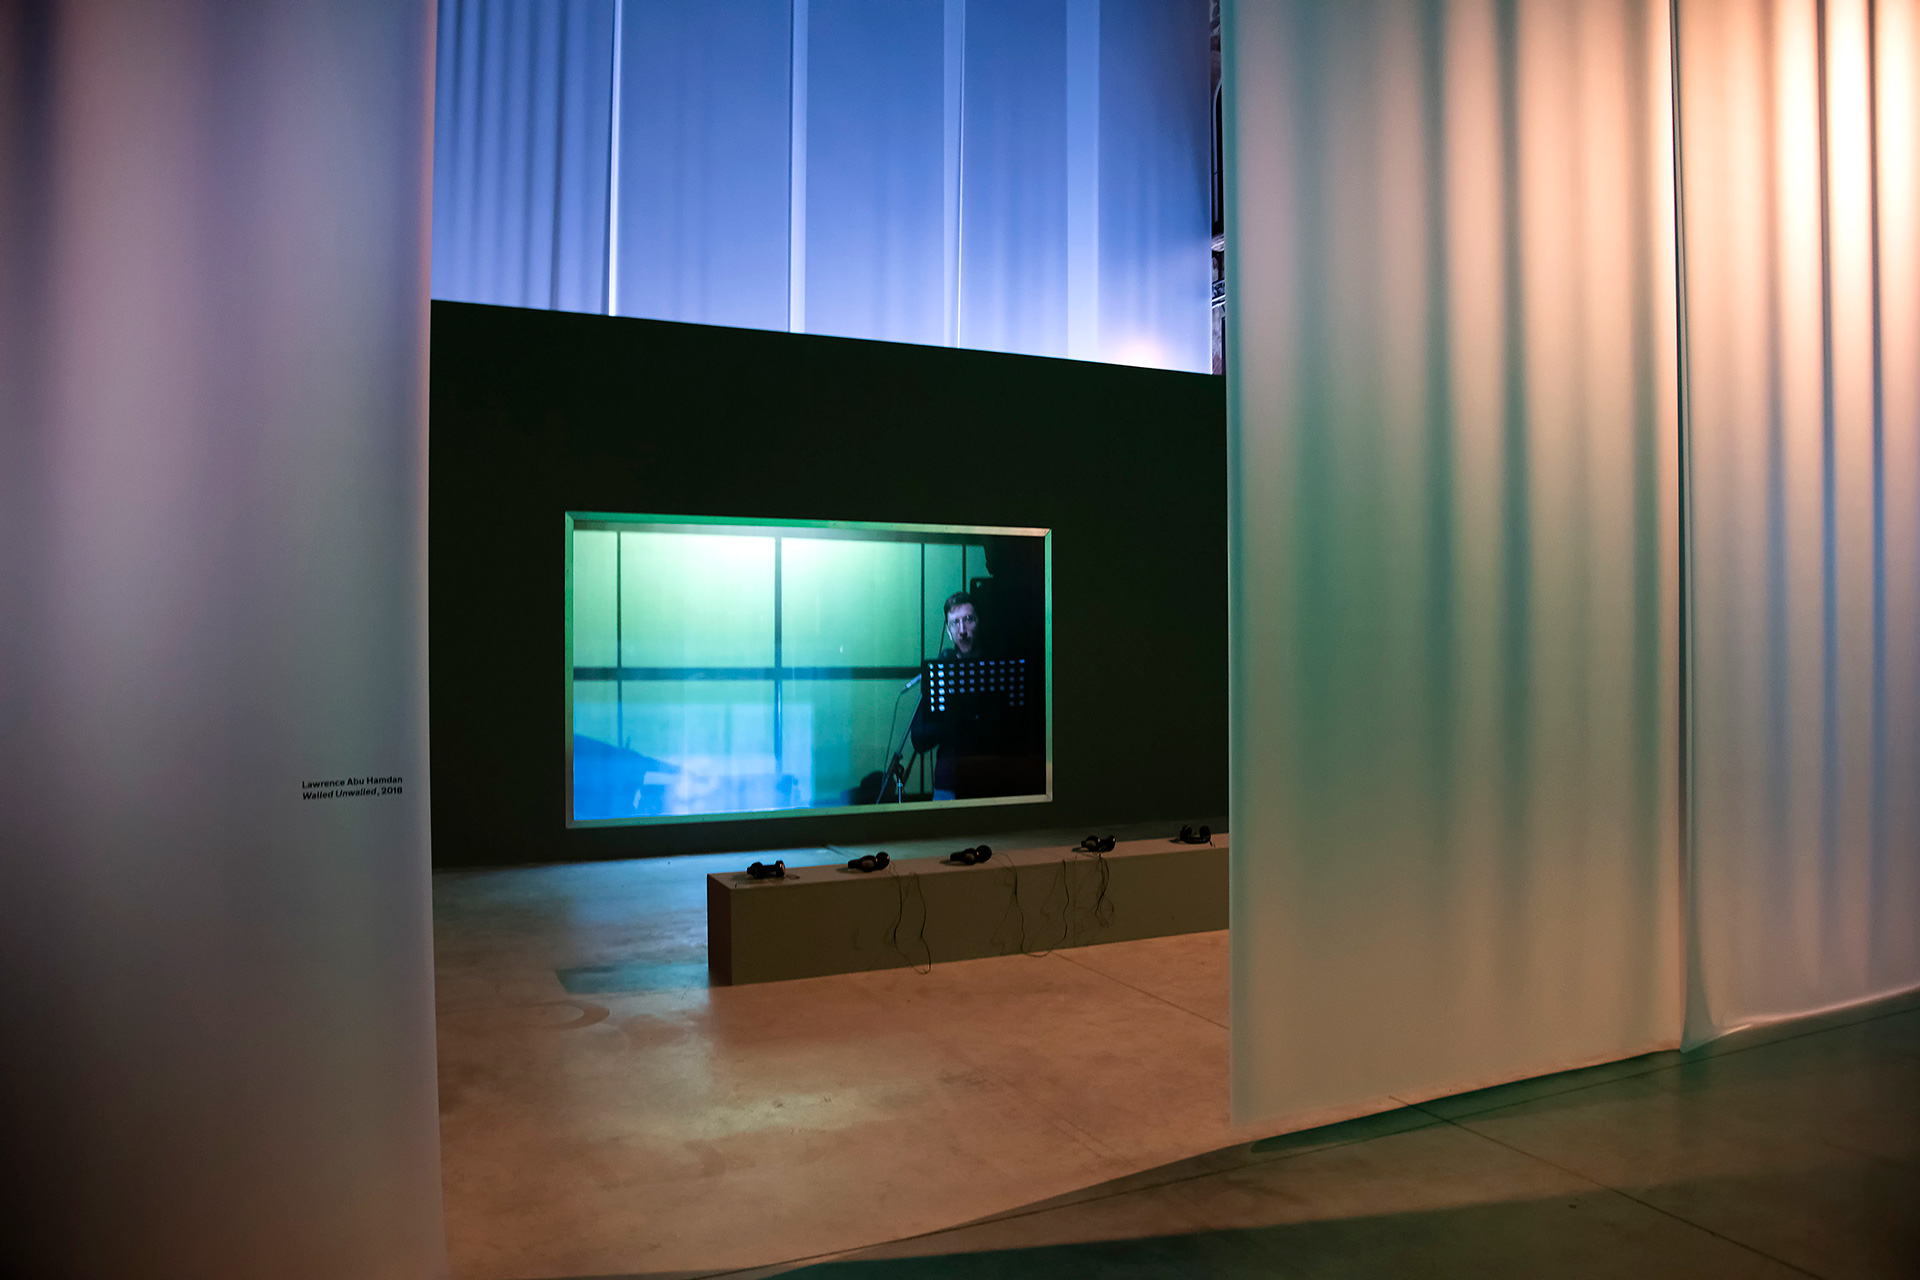 Biennale de l'Image en Mouvement, The Sound of Screens Imploding, at OGR – Turin | The Biennale of Moving Images | STIRworld